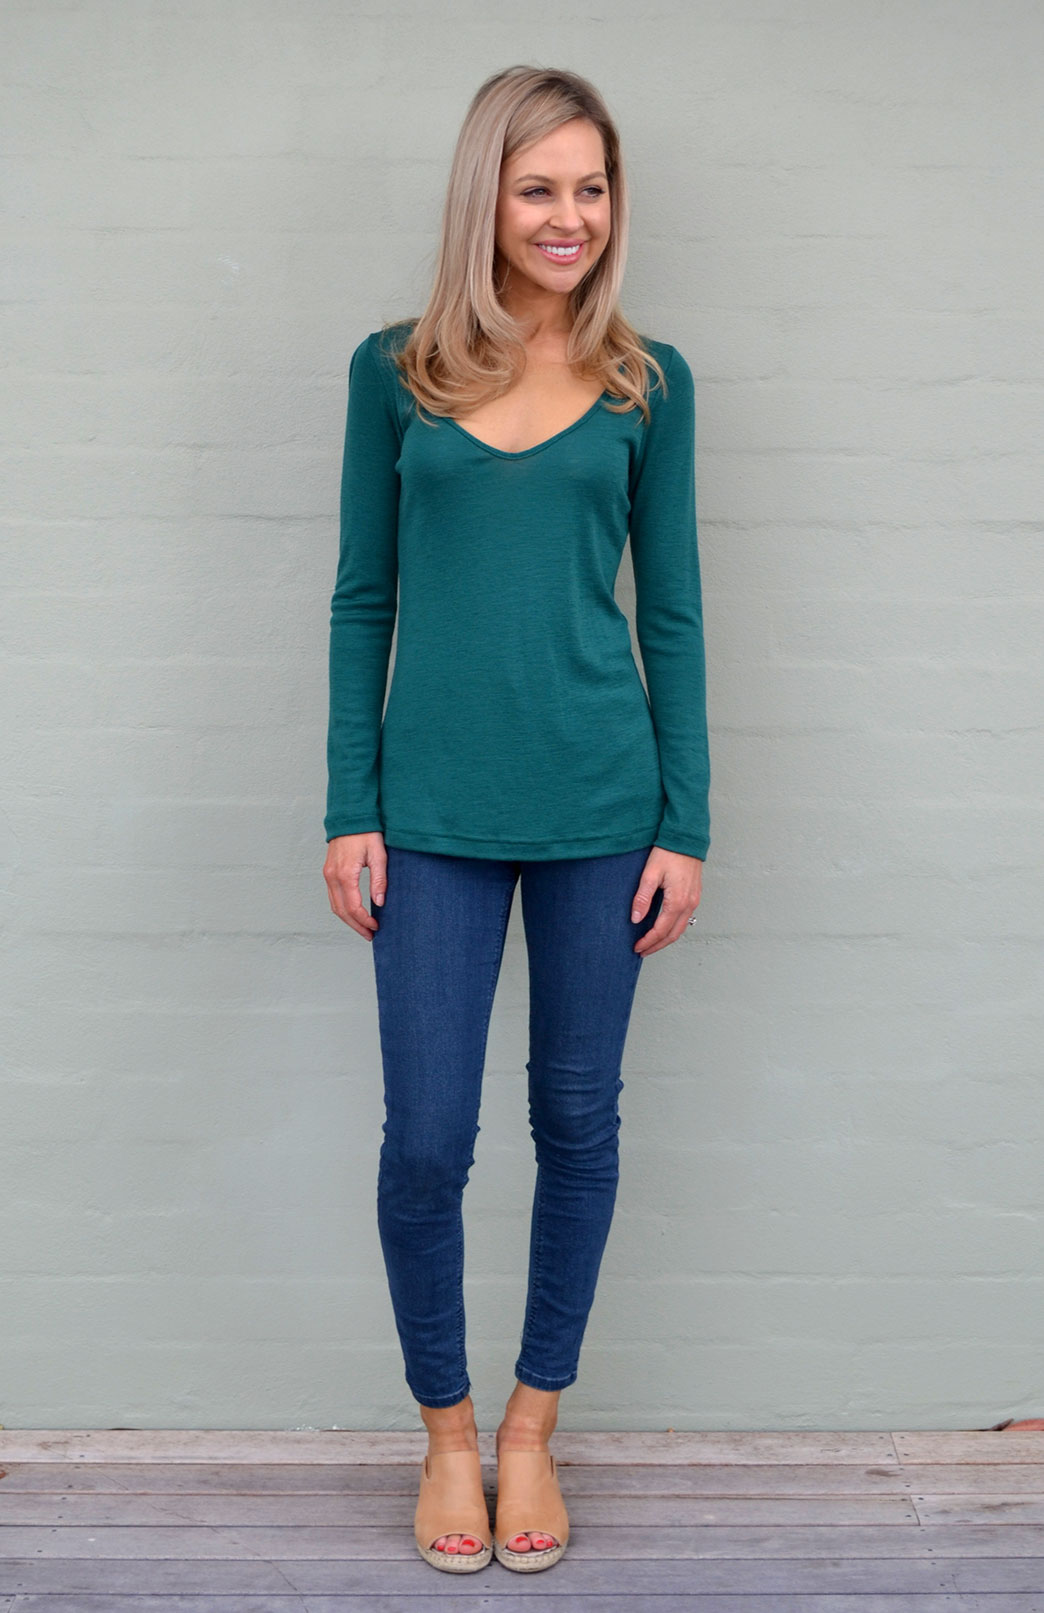 V-Neck Top (Rib) - Women's Pure Wool Emerald Green V-Neck Top with Long Sleeves - Smitten Merino Tasmania Australia